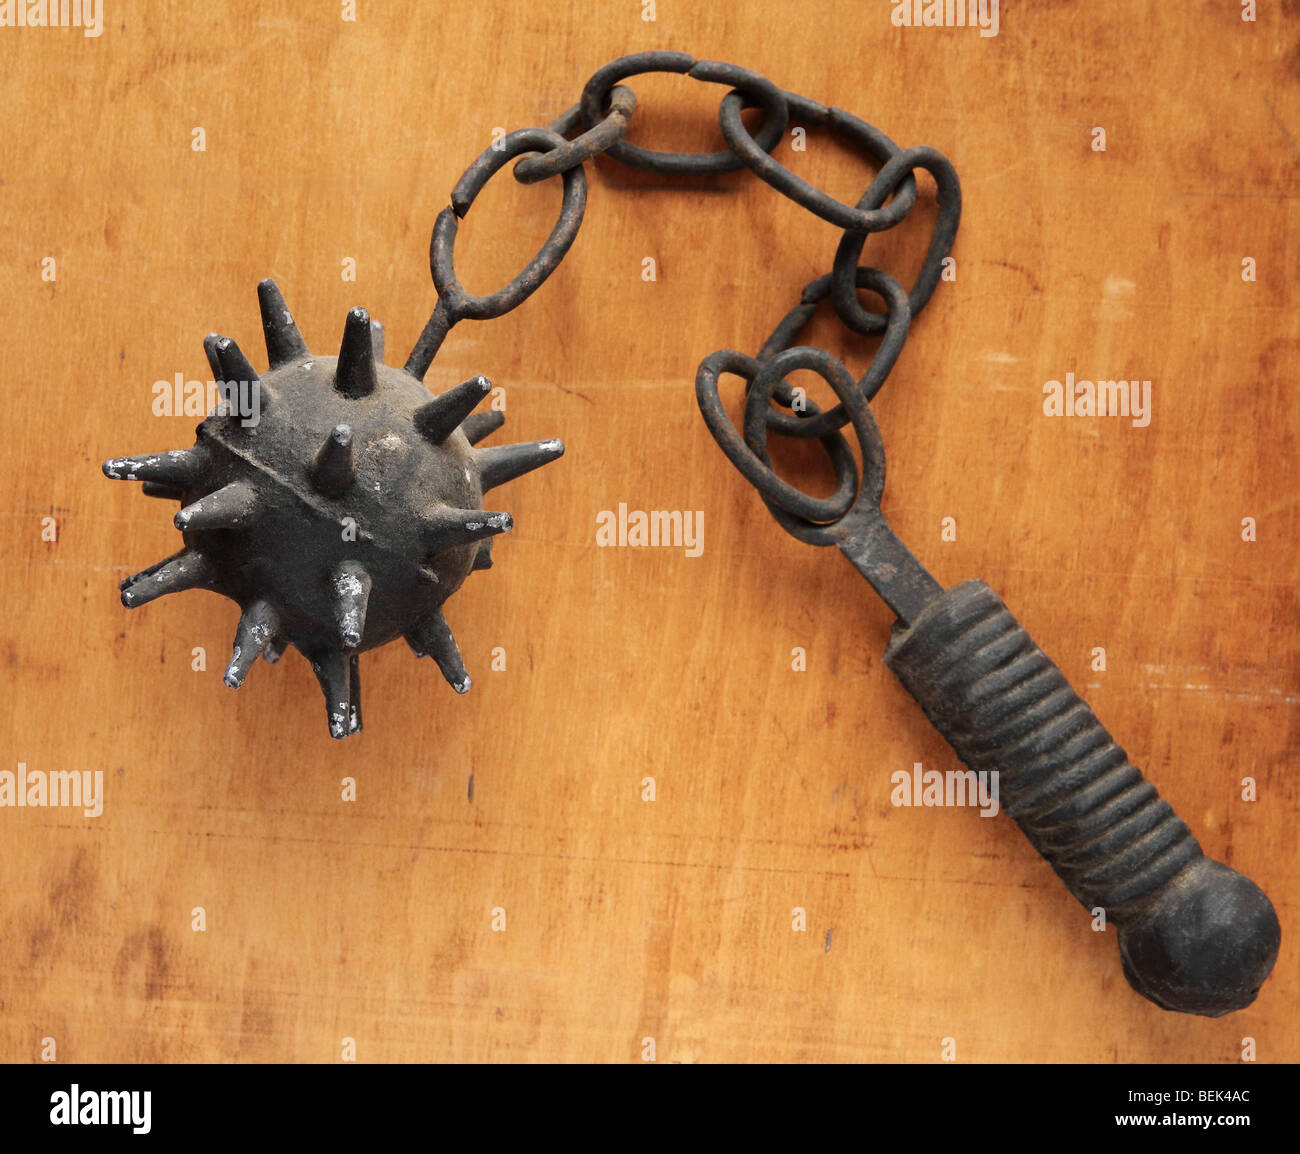 flail weapon stock photos flail weapon stock images alamy